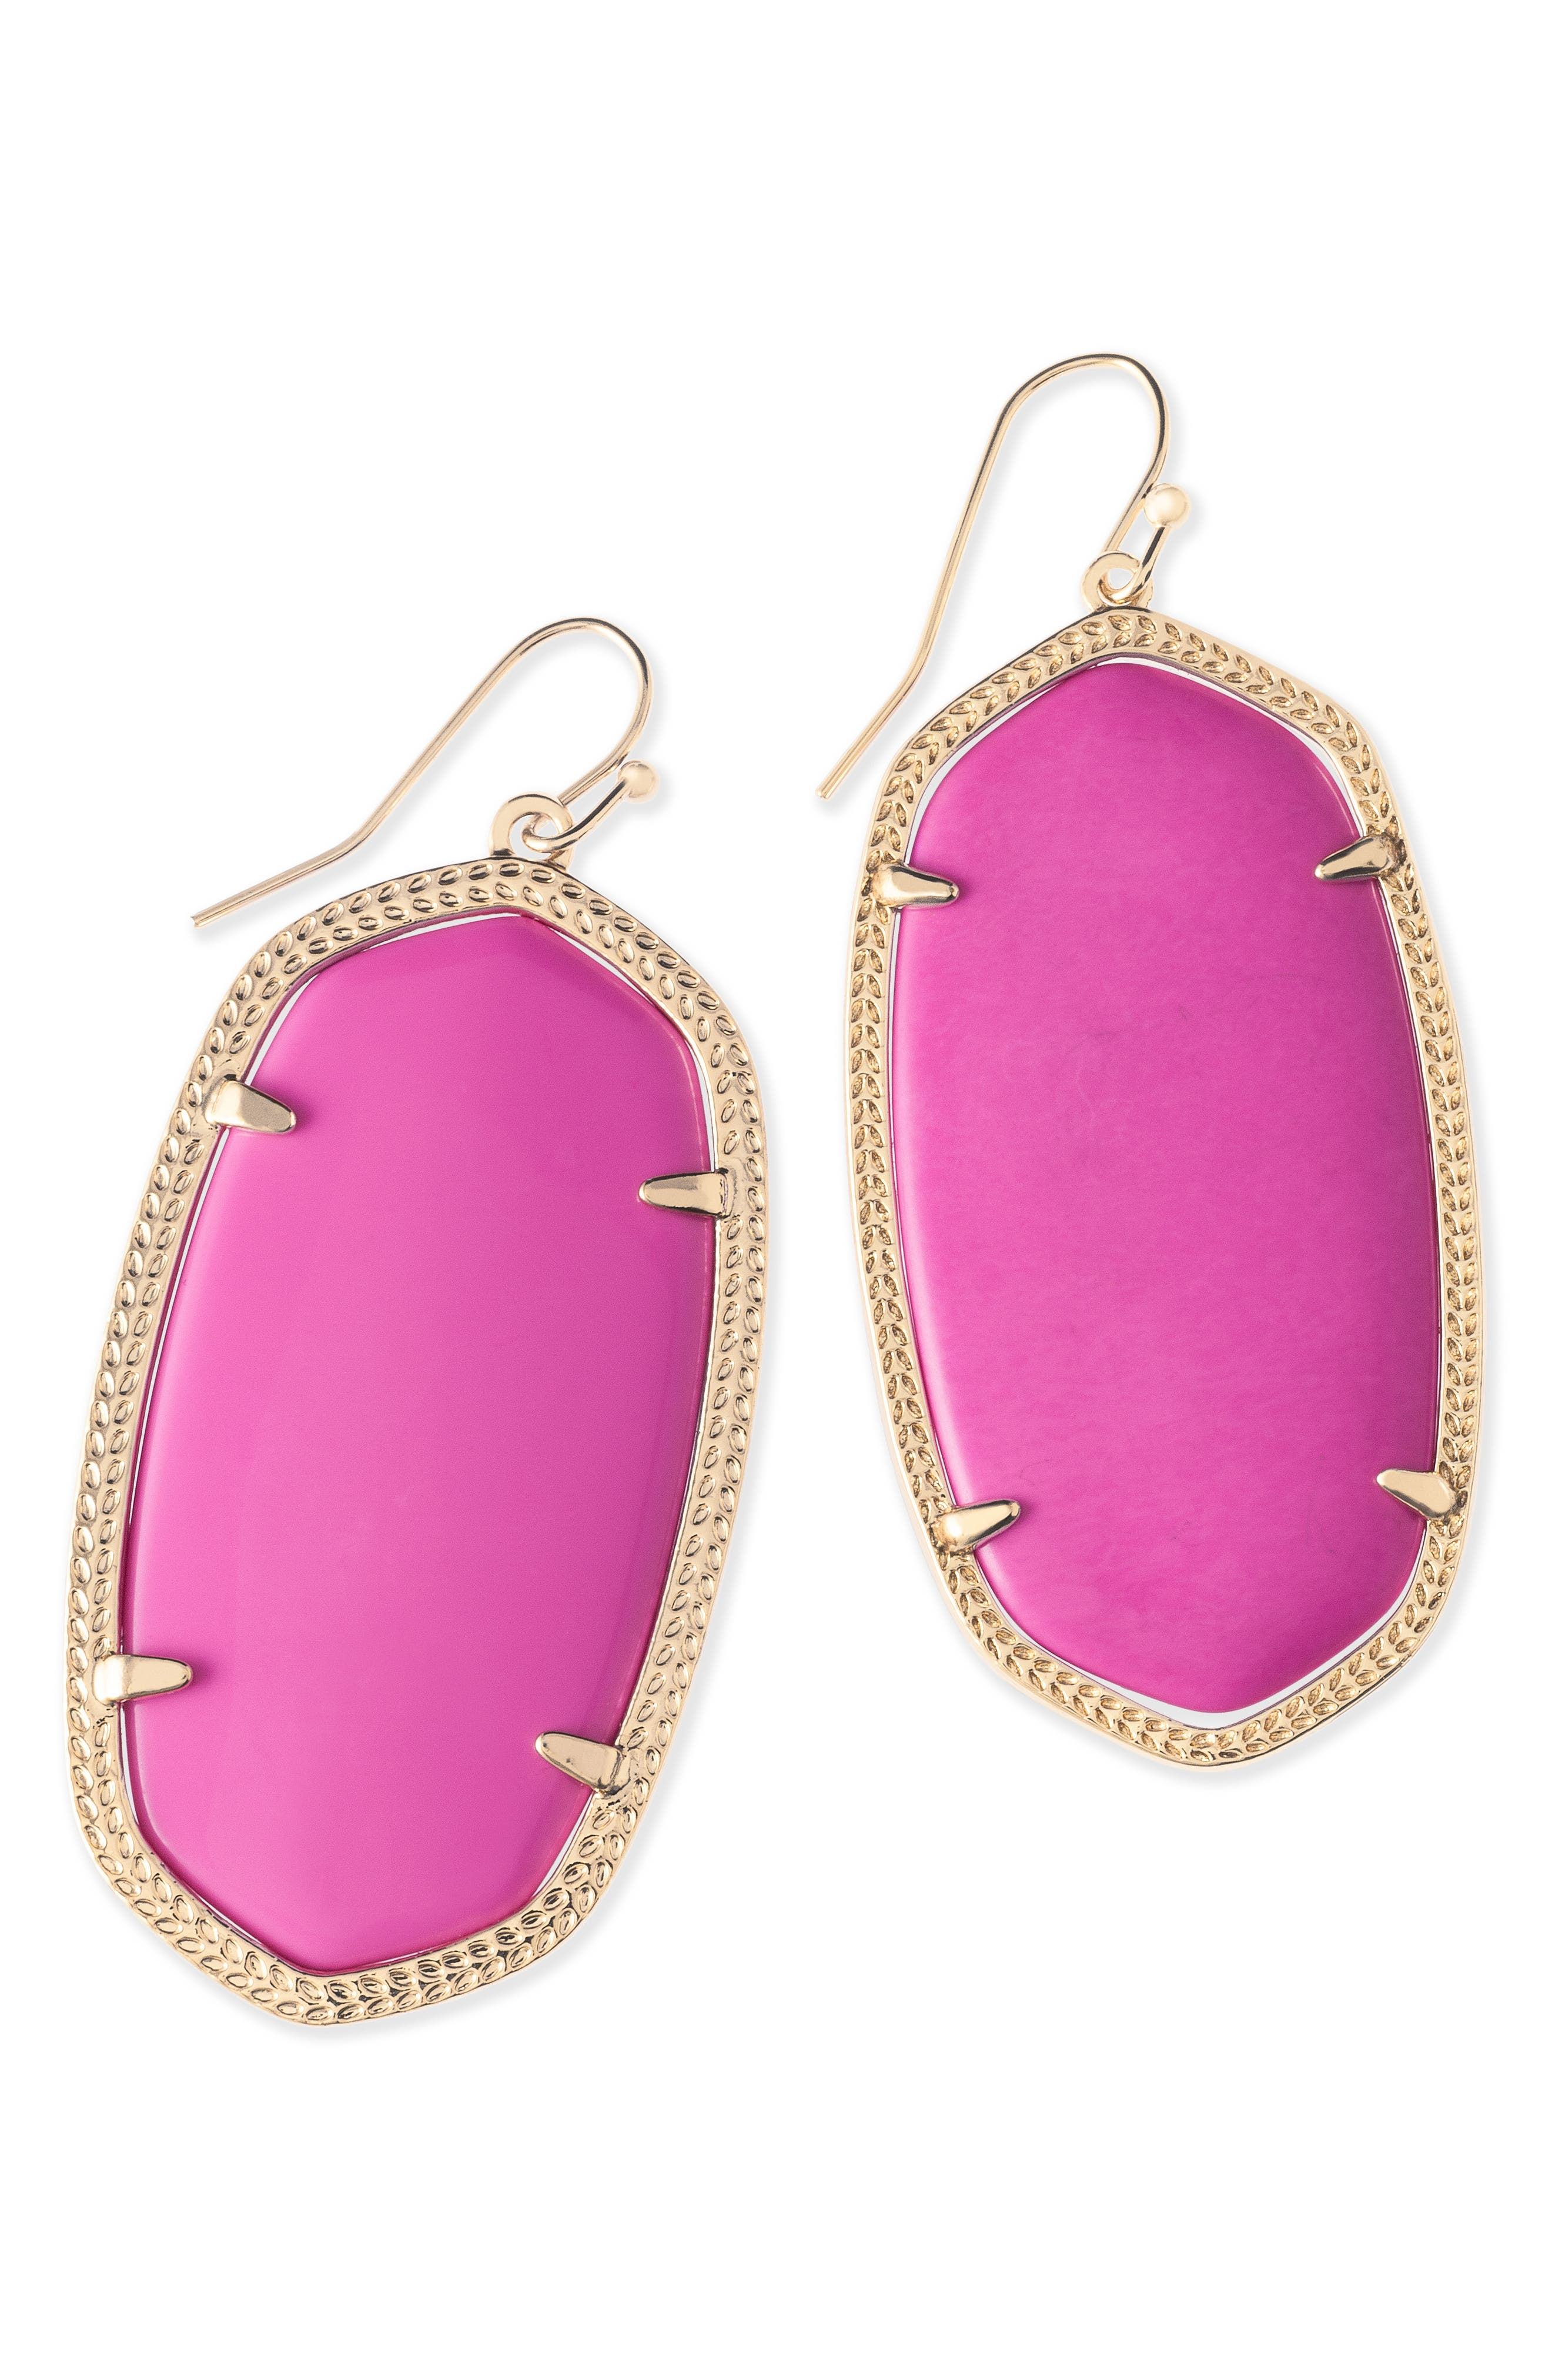 Danielle - Large Oval Statement Earrings,                             Alternate thumbnail 118, color,